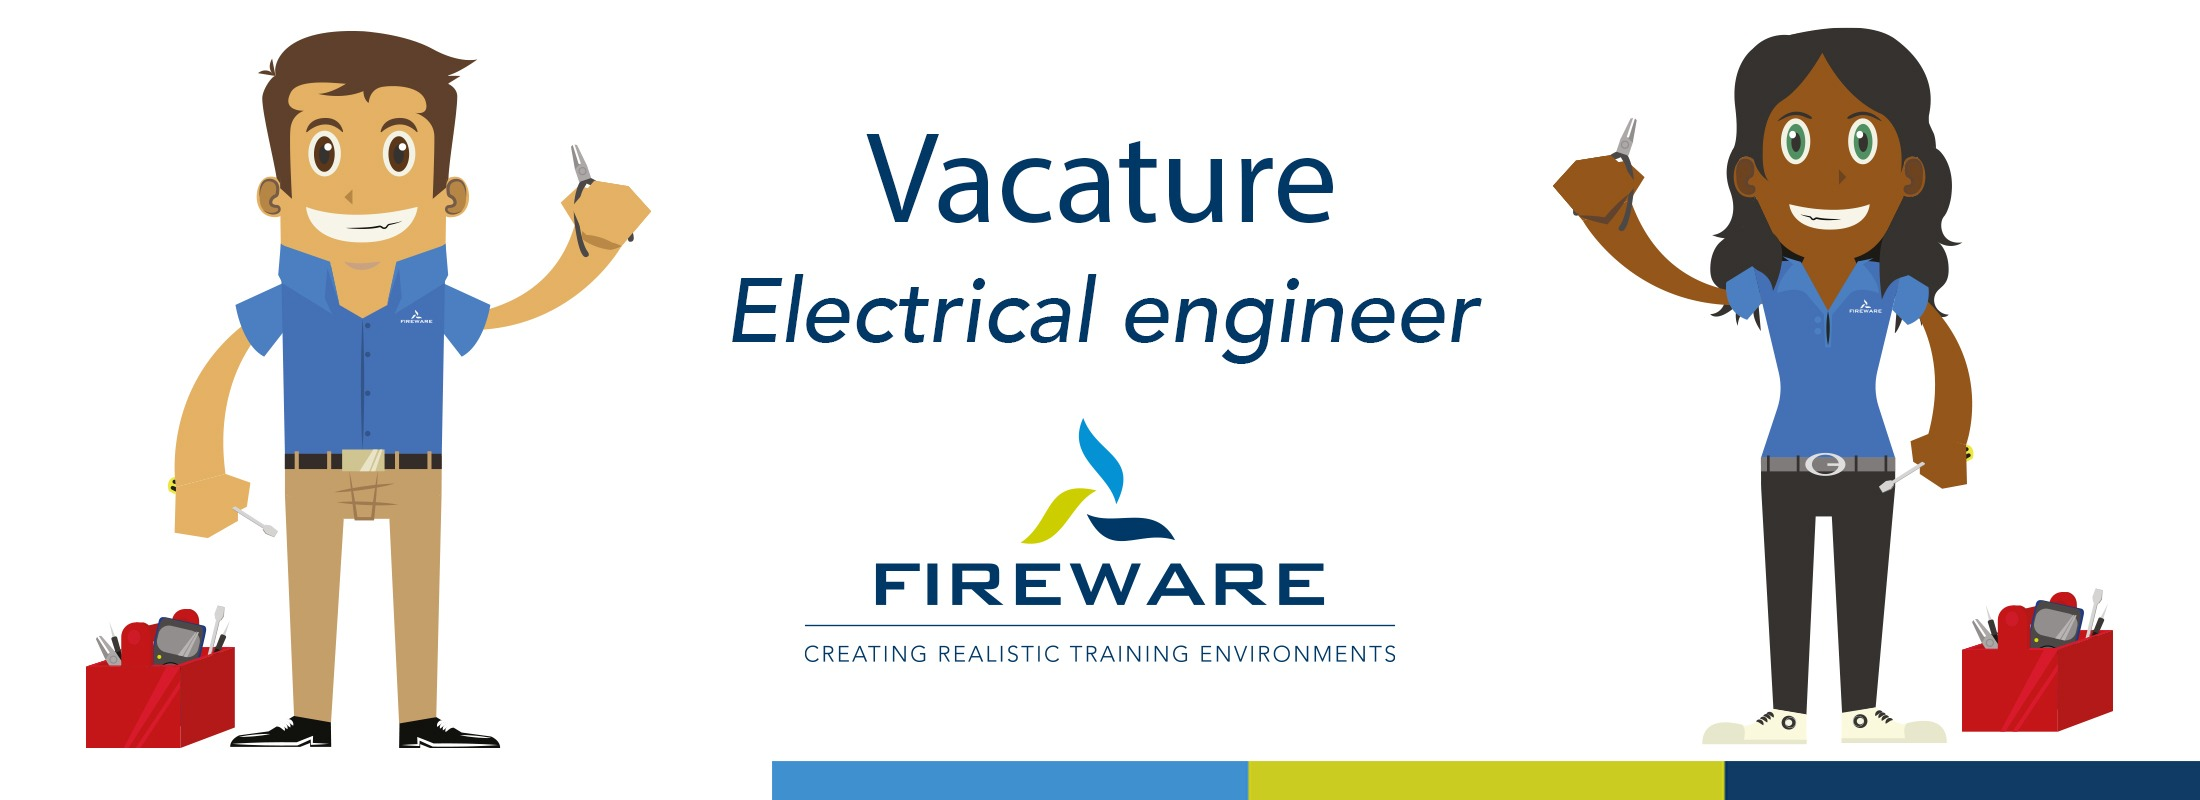 Vacature Electrical Engineer